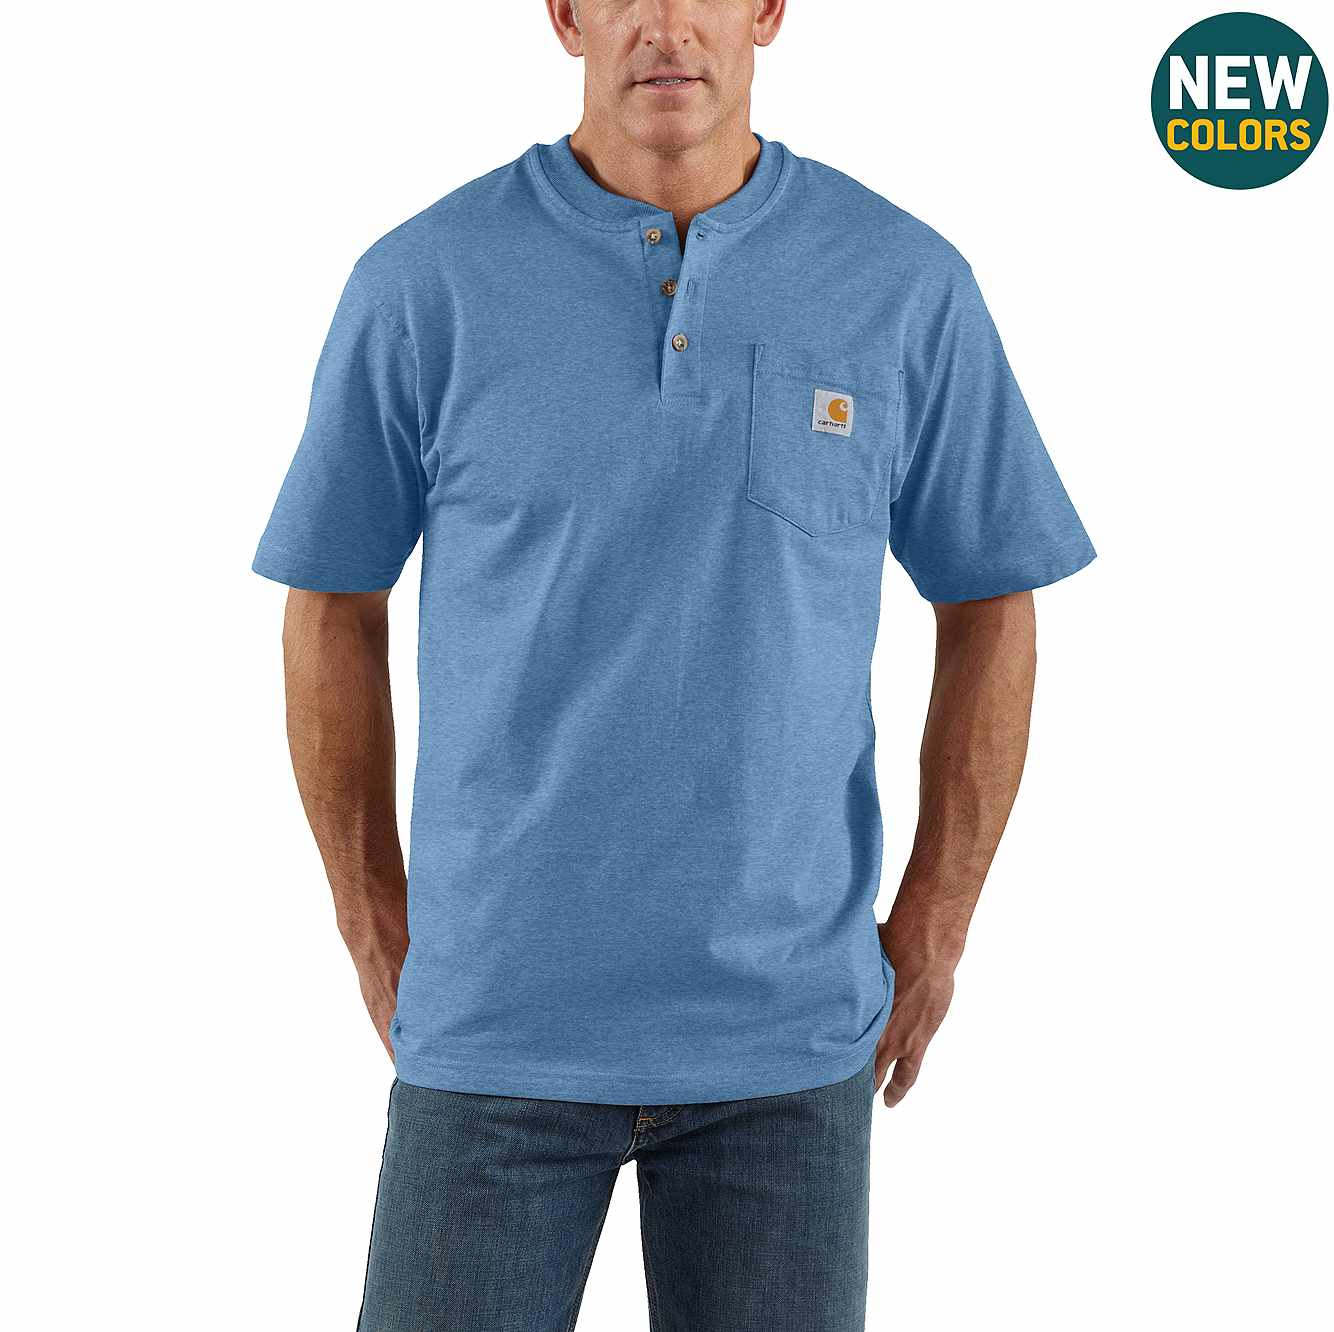 Picture of Loose Fit Heavyweight Short-Sleeve Pocket Henley T-Shirt in Coastal Heather